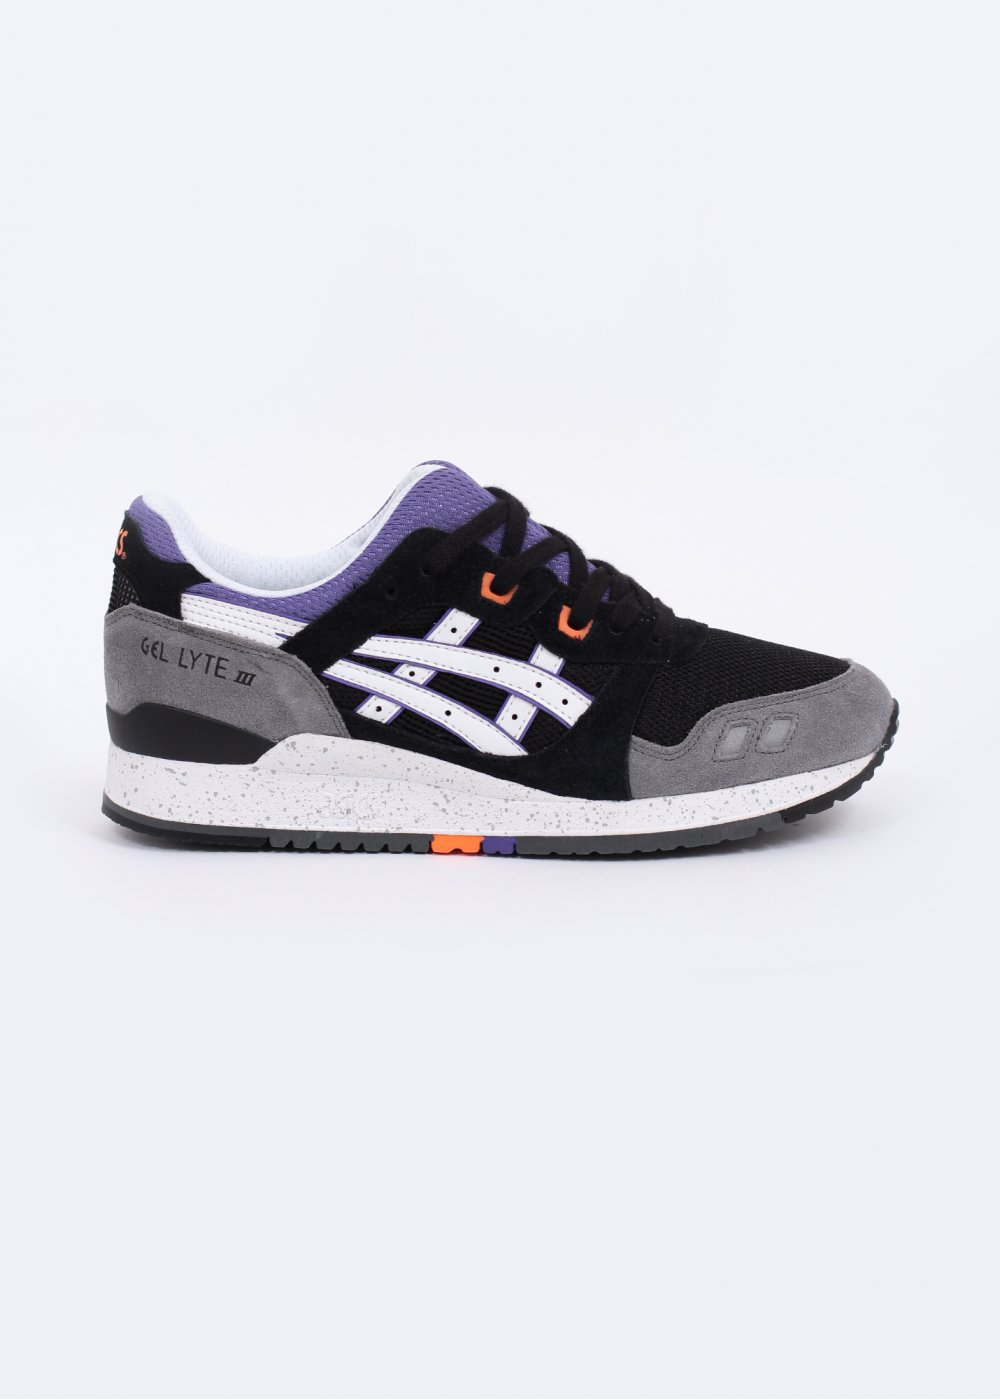 detailed pictures 14f2b 17099 Gel-Lyte III 'Illusion' Trainers - Black / White